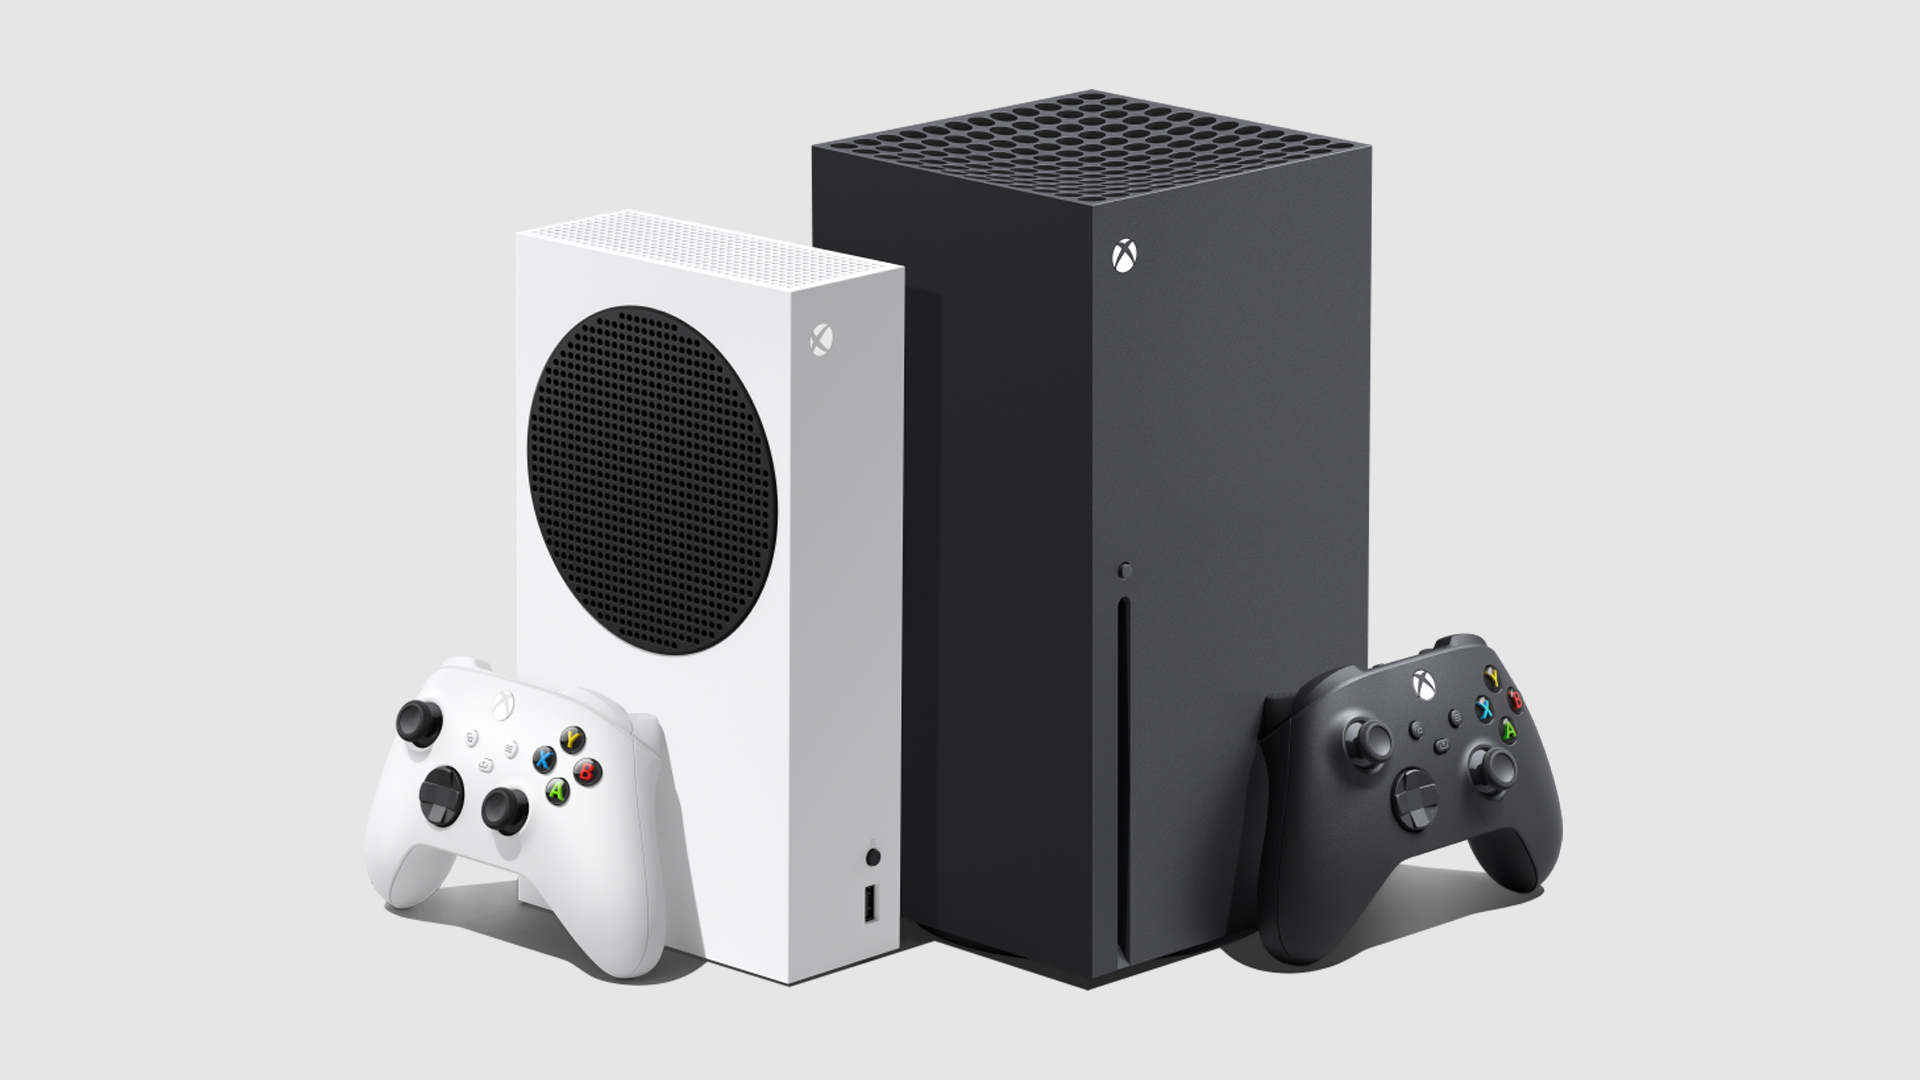 Xbox Series X And Xbox Series S Designing The Next Generation Of Consoles Xbox Wire